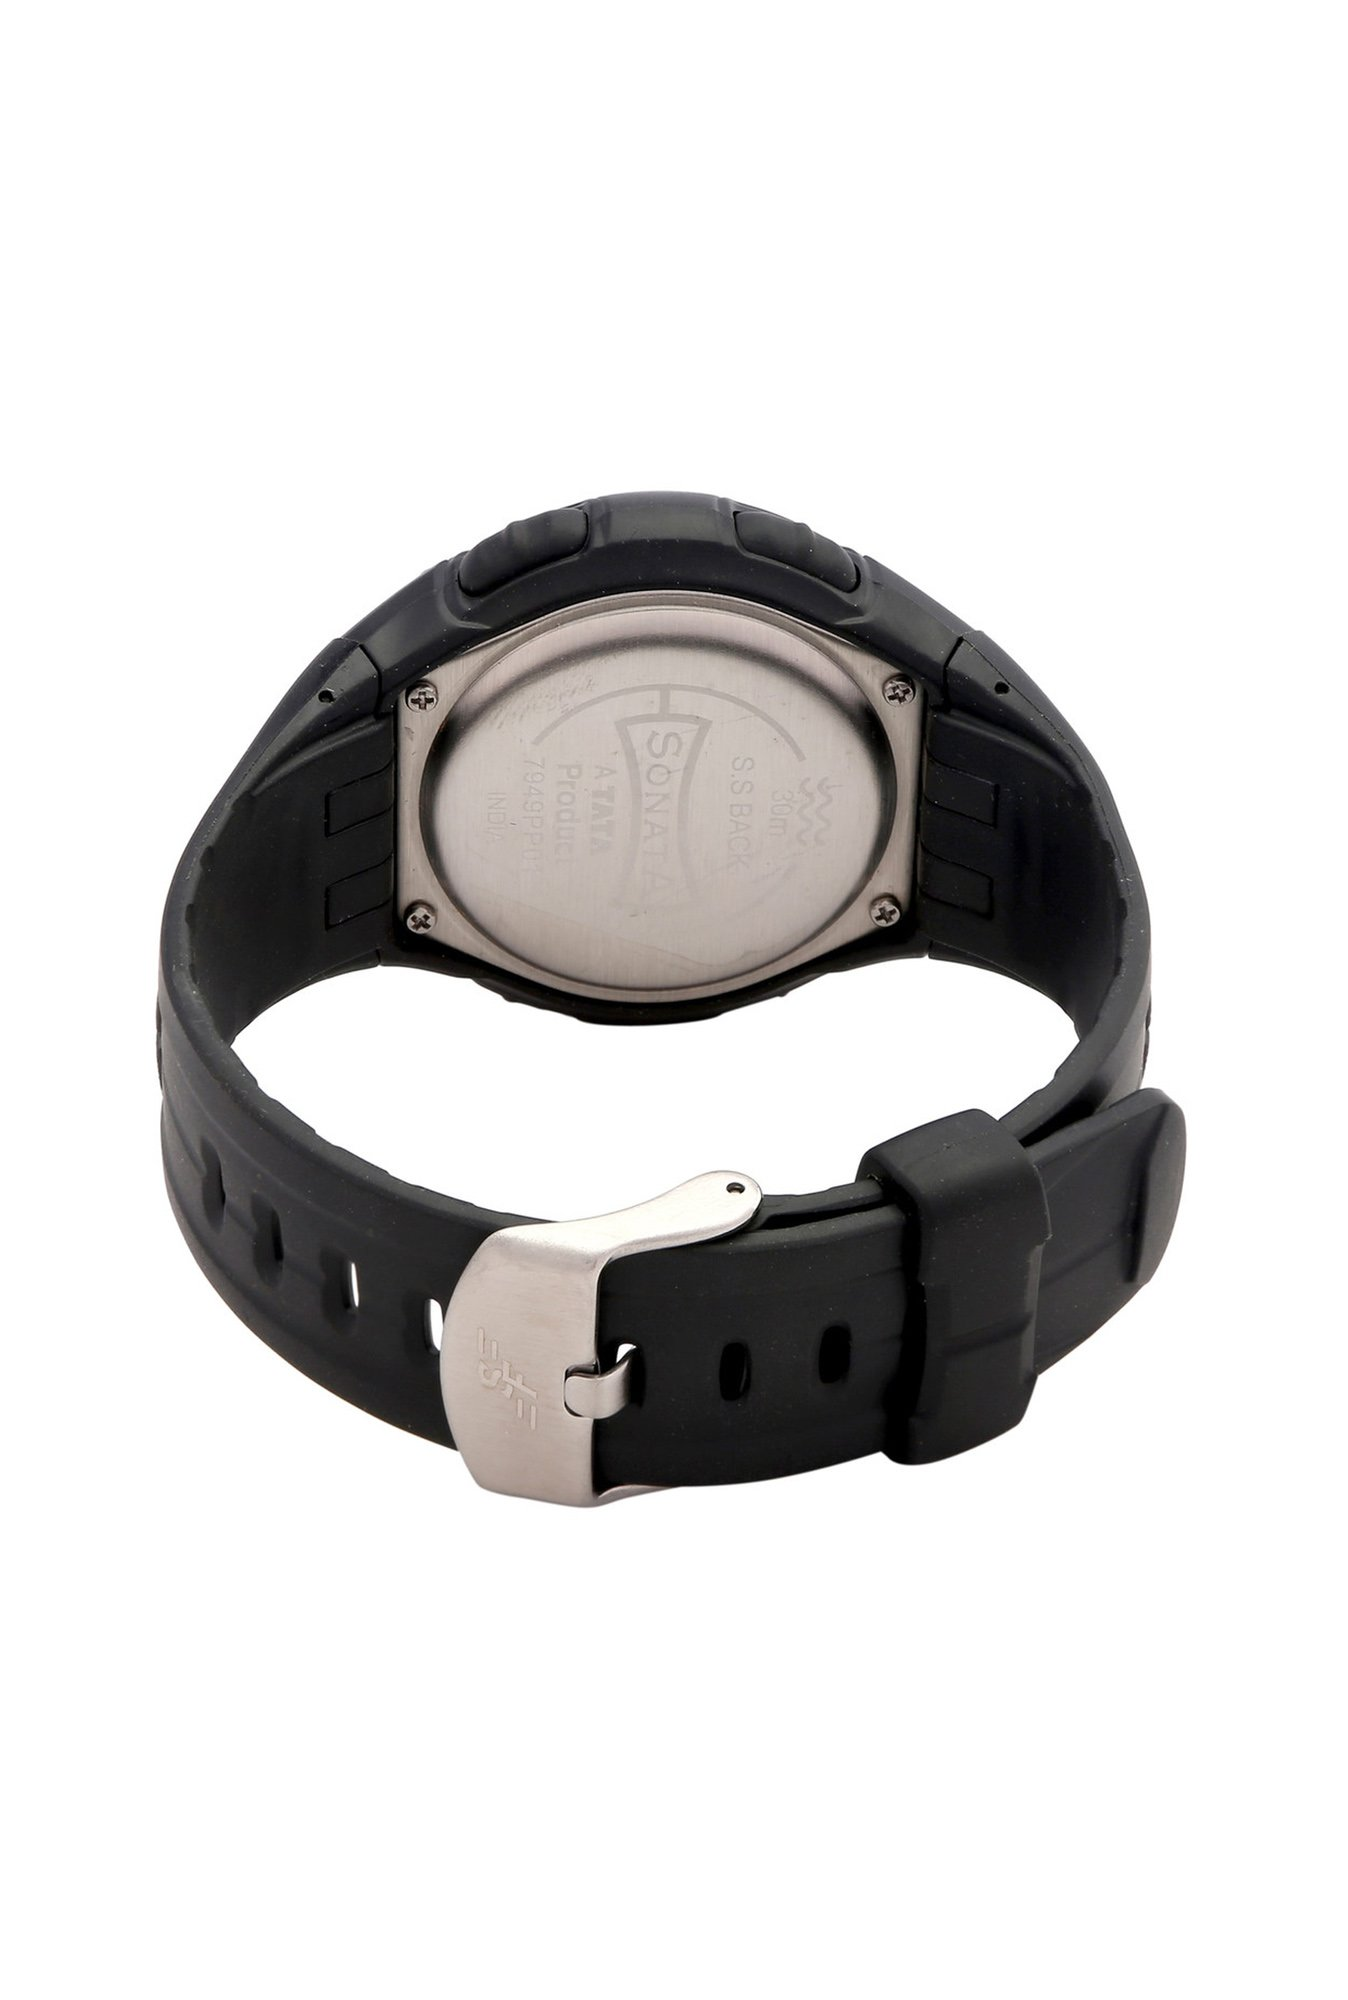 Sonata NH7949PP01J Super Fibre Digital Men's Watch (NH7949PP01J)